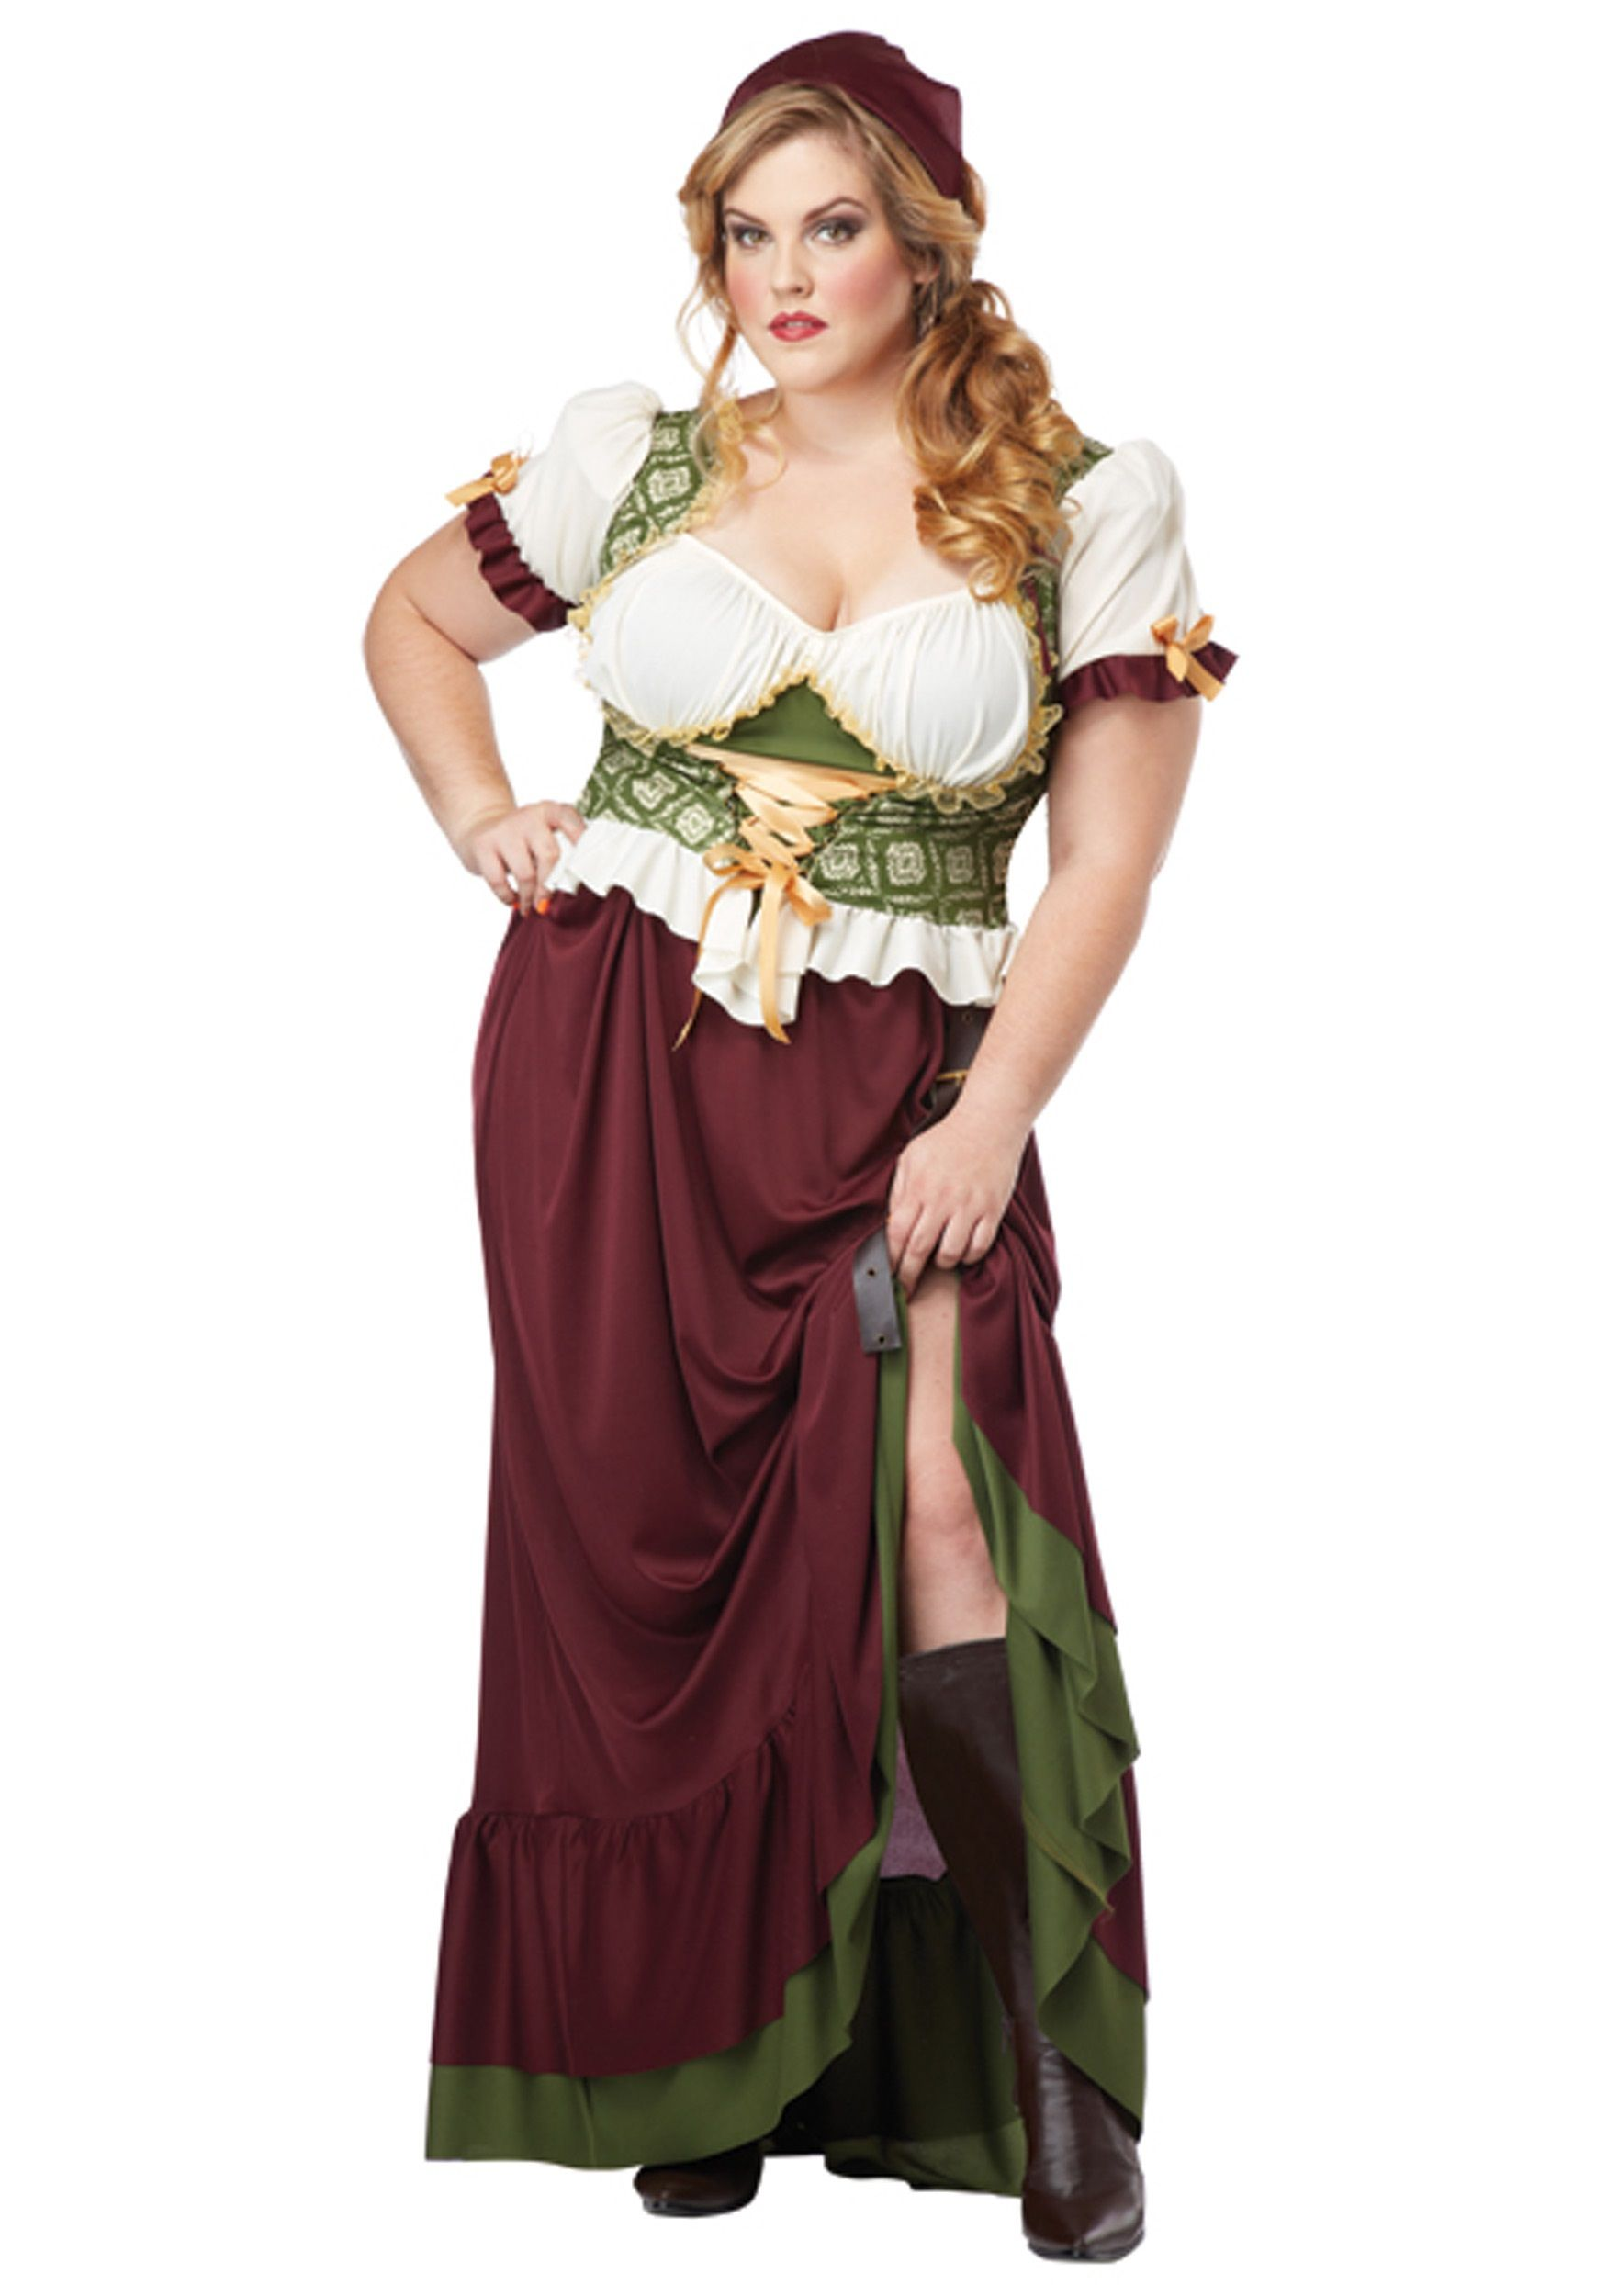 ff92adb2e6 Renaissance Beer Wench Costume - Love this!!!